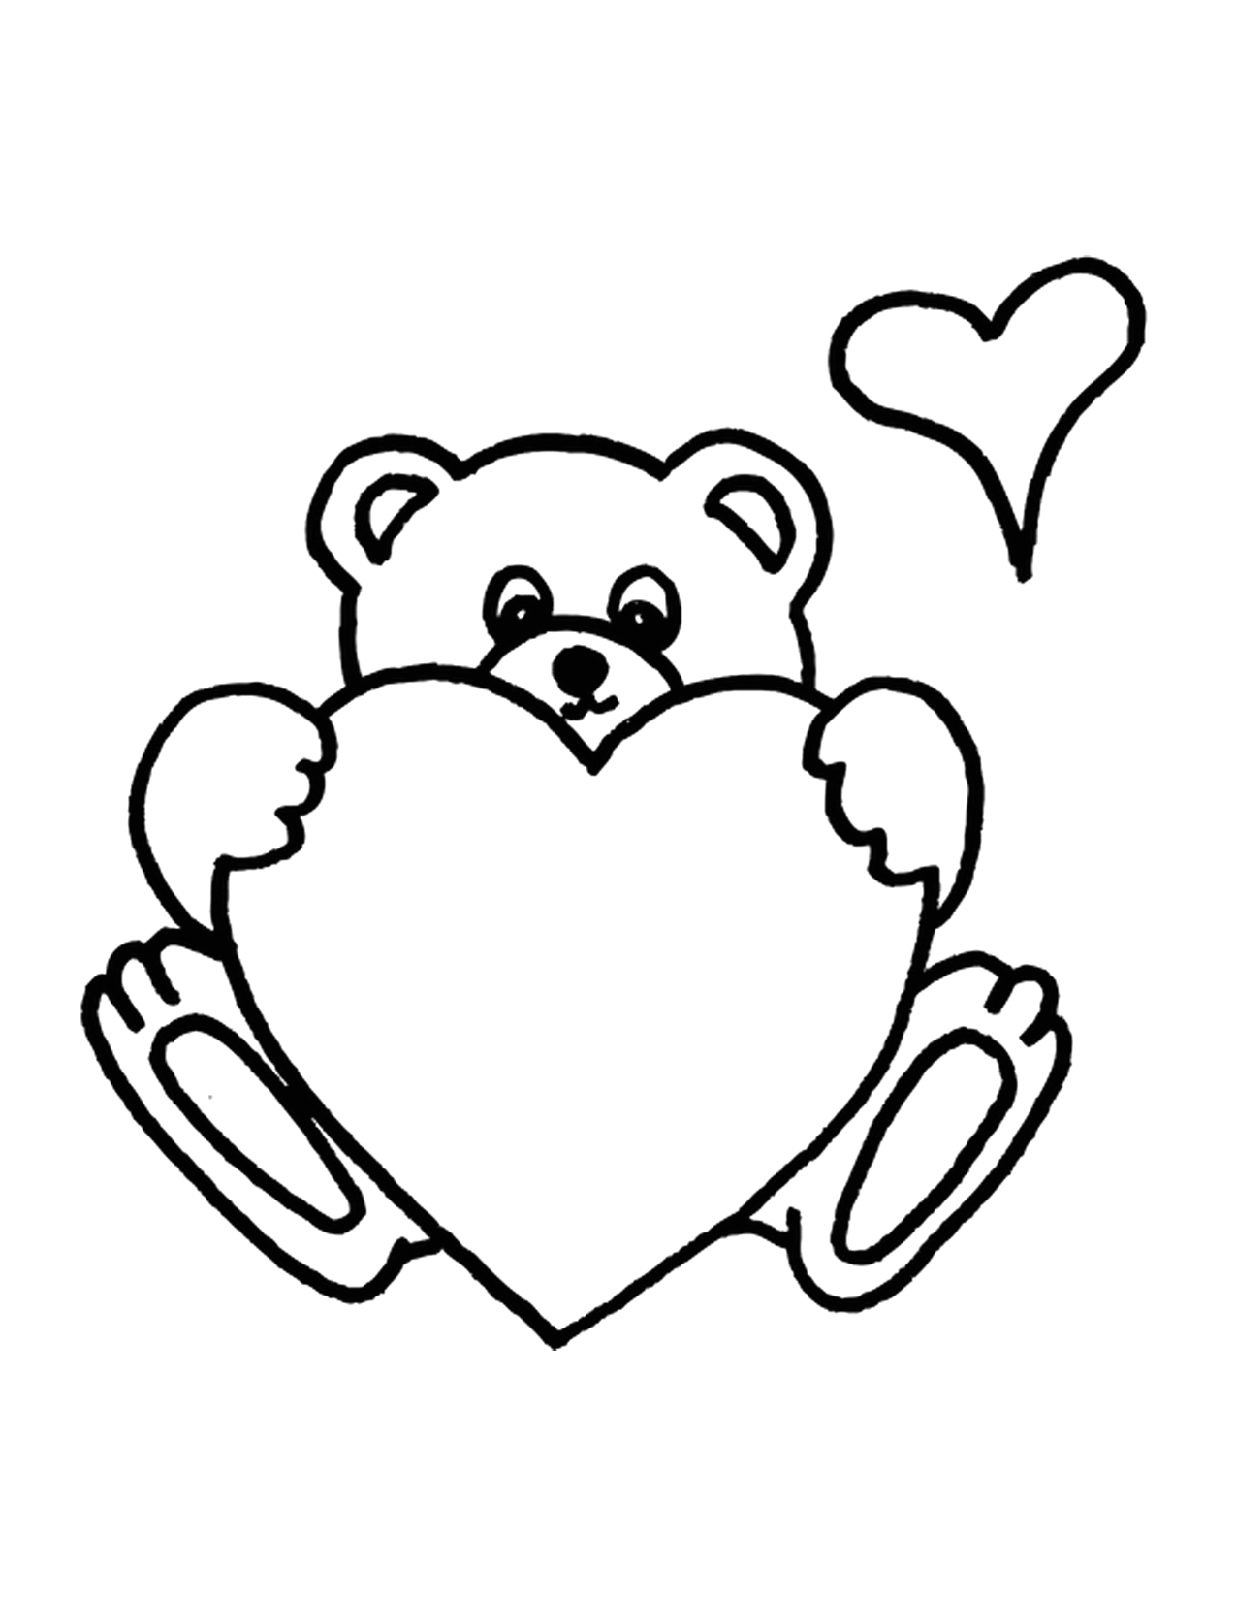 Coloring Pages Of Teddy Bears with Hearts Heart Teddy Bear Coloring Pages to Print Educative